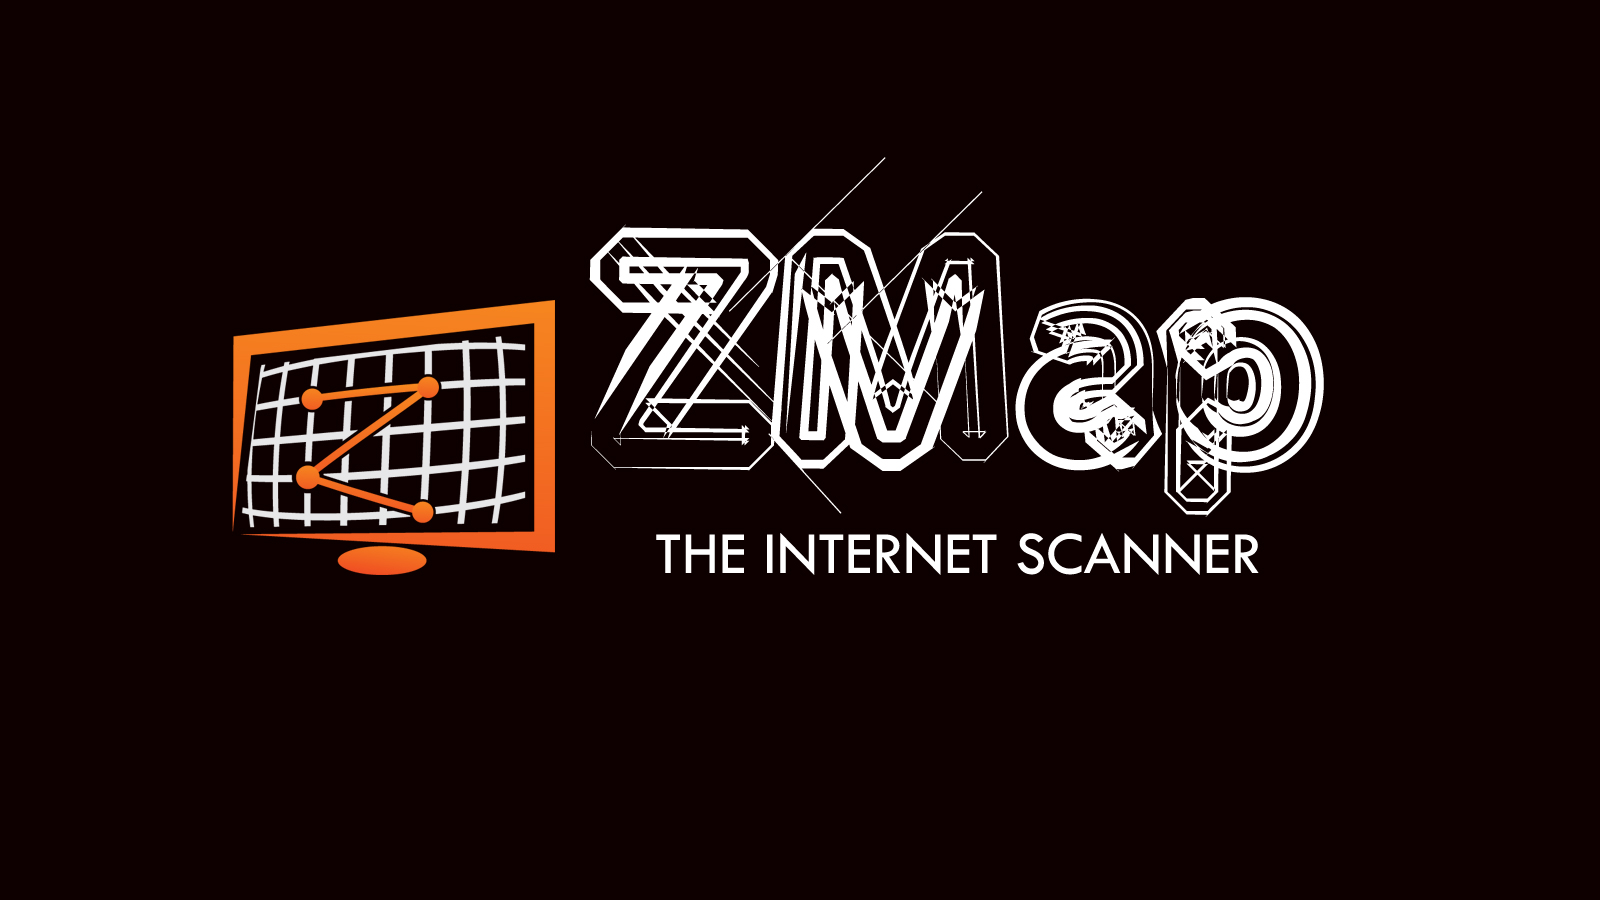 ZMap - The Internet Scanner